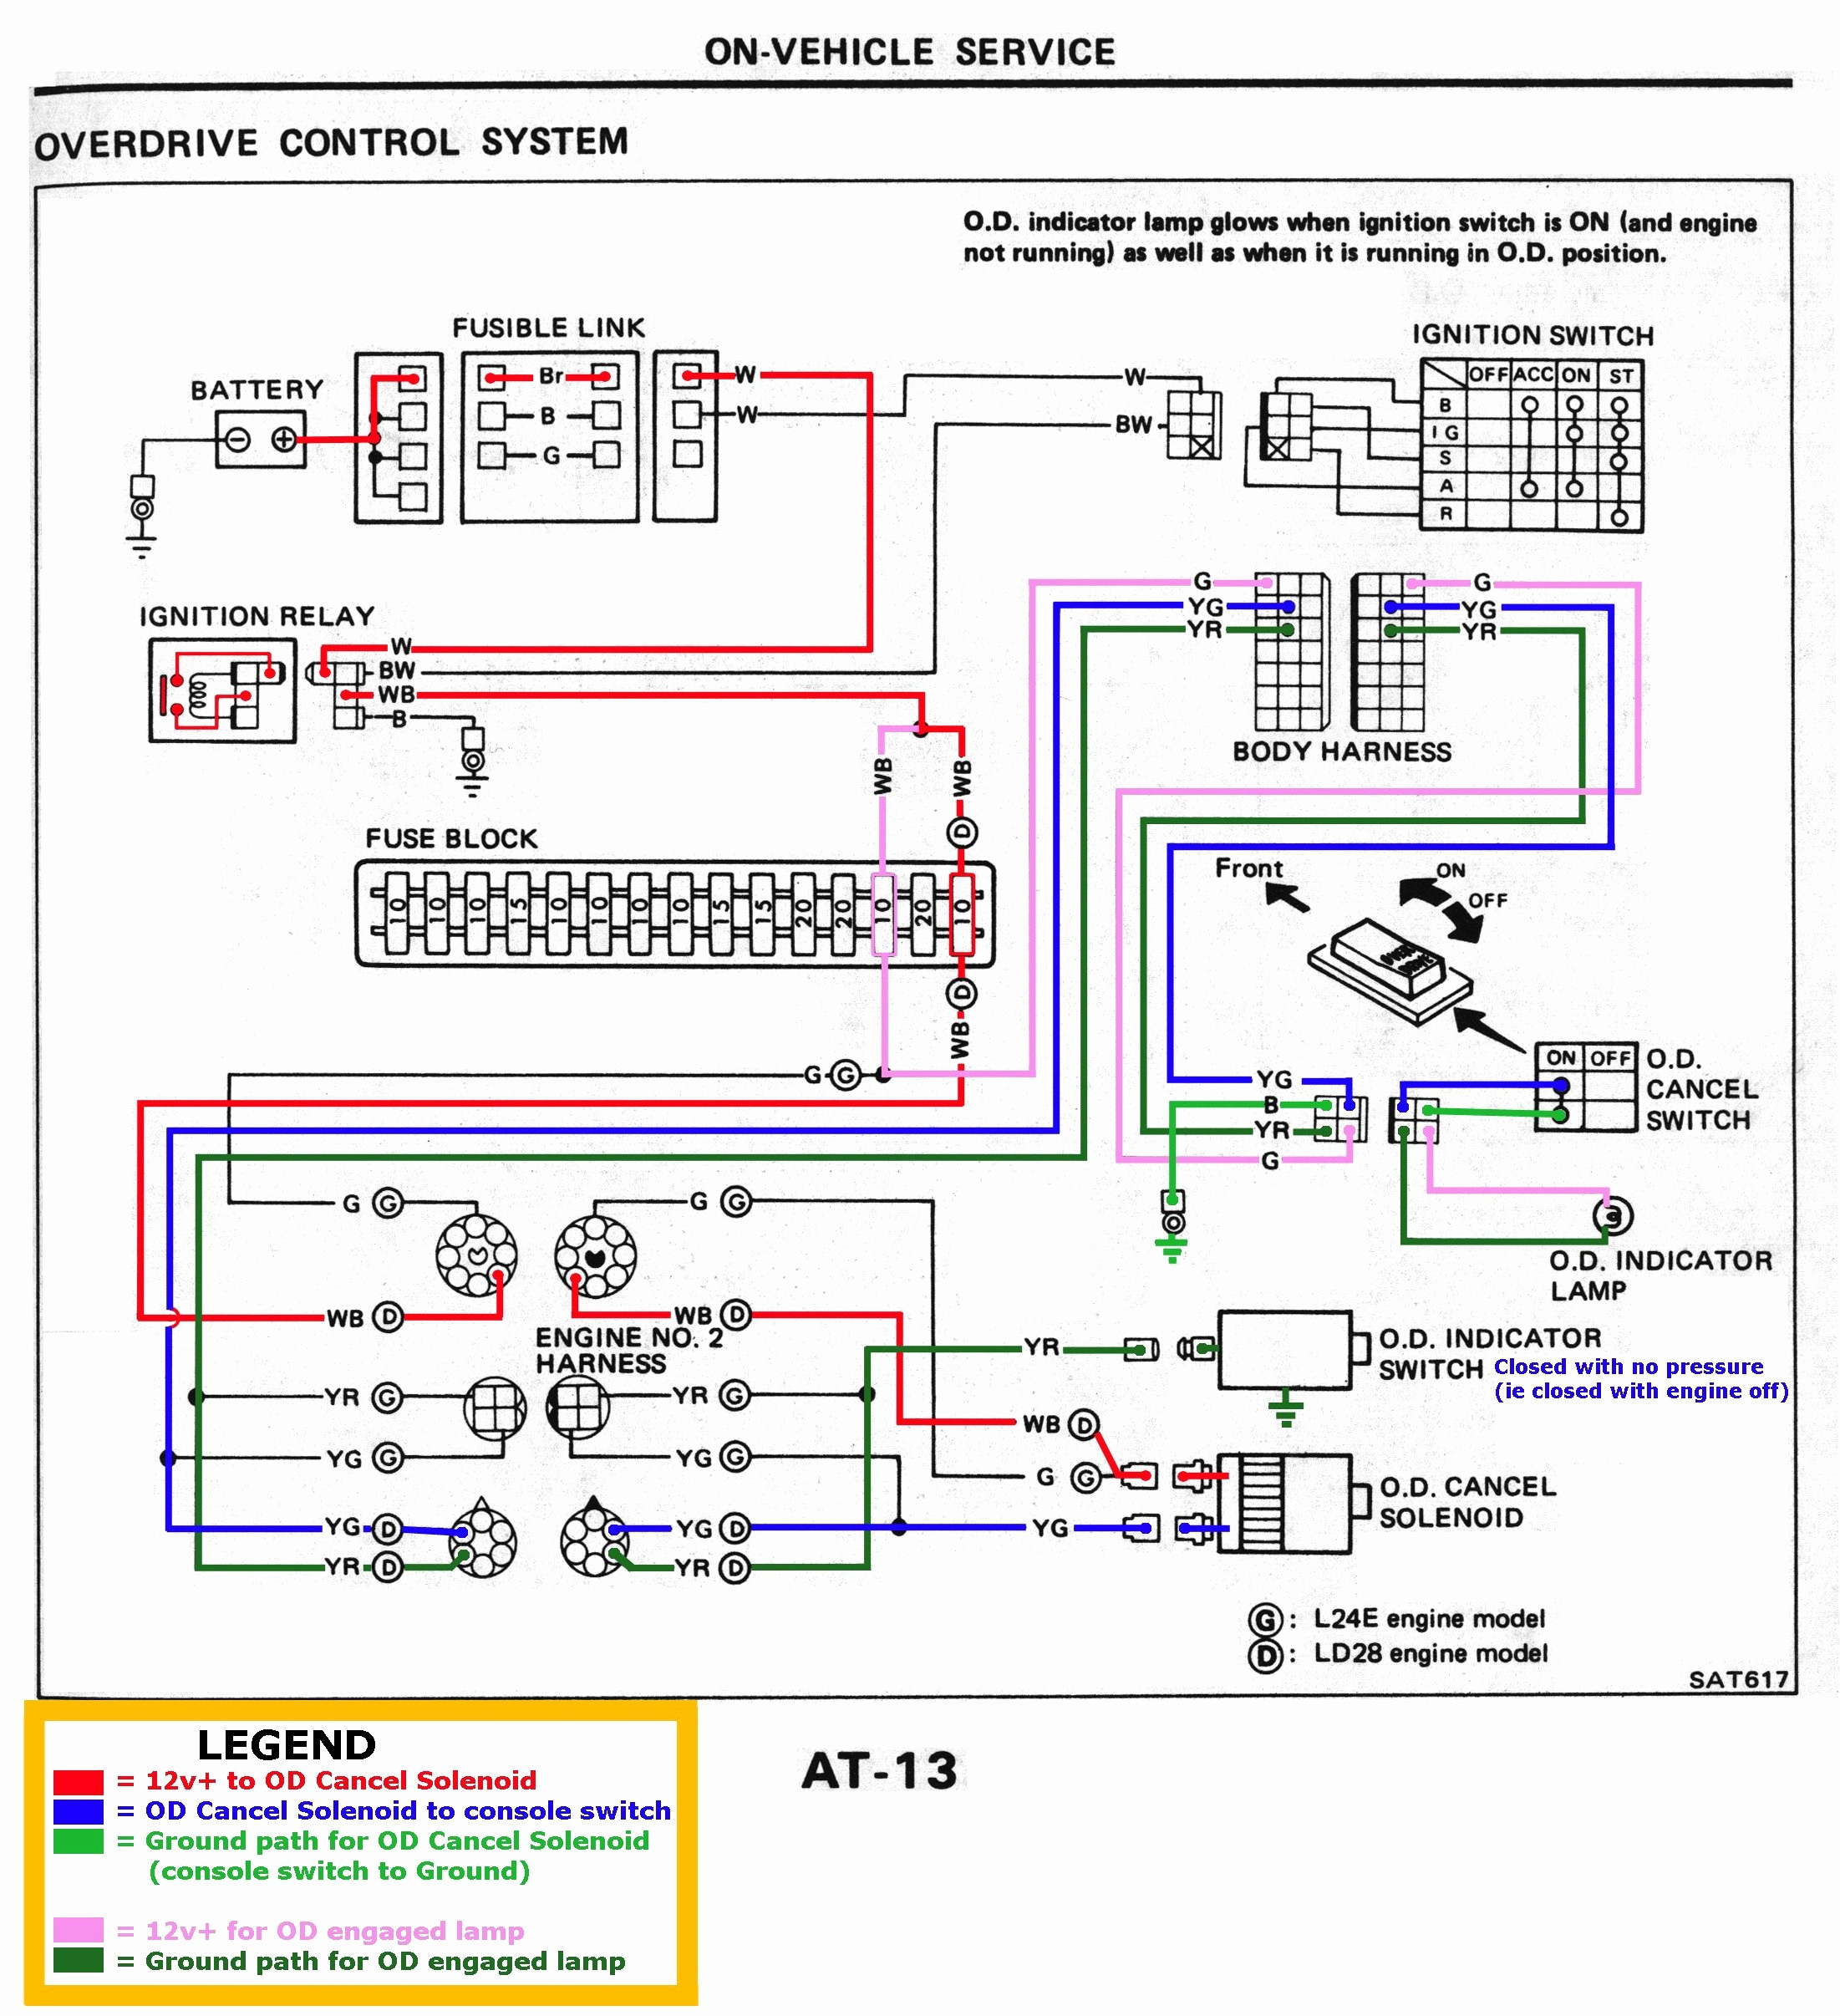 Square D Air Compressor Pressure Switch Wiring Diagram - Square D Air Pressor Pressure Switch Wiring Diagram New Wiring Diagram Square D Pressure Switch Wiring Diagram New 10m